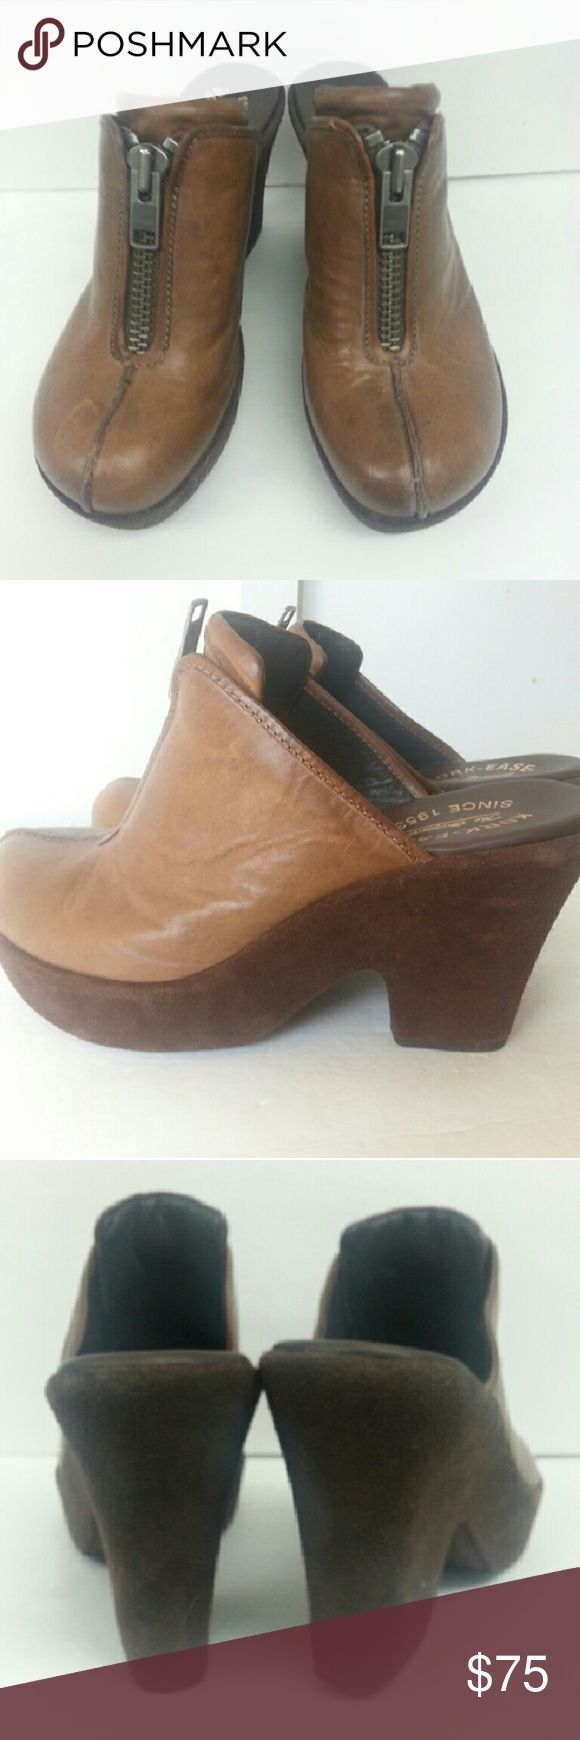 KORK EASE  CLOGS Leather Kork Ease clogs with zips up the front and brown suede heels. Kork Ease Shoes Mules & Clogs